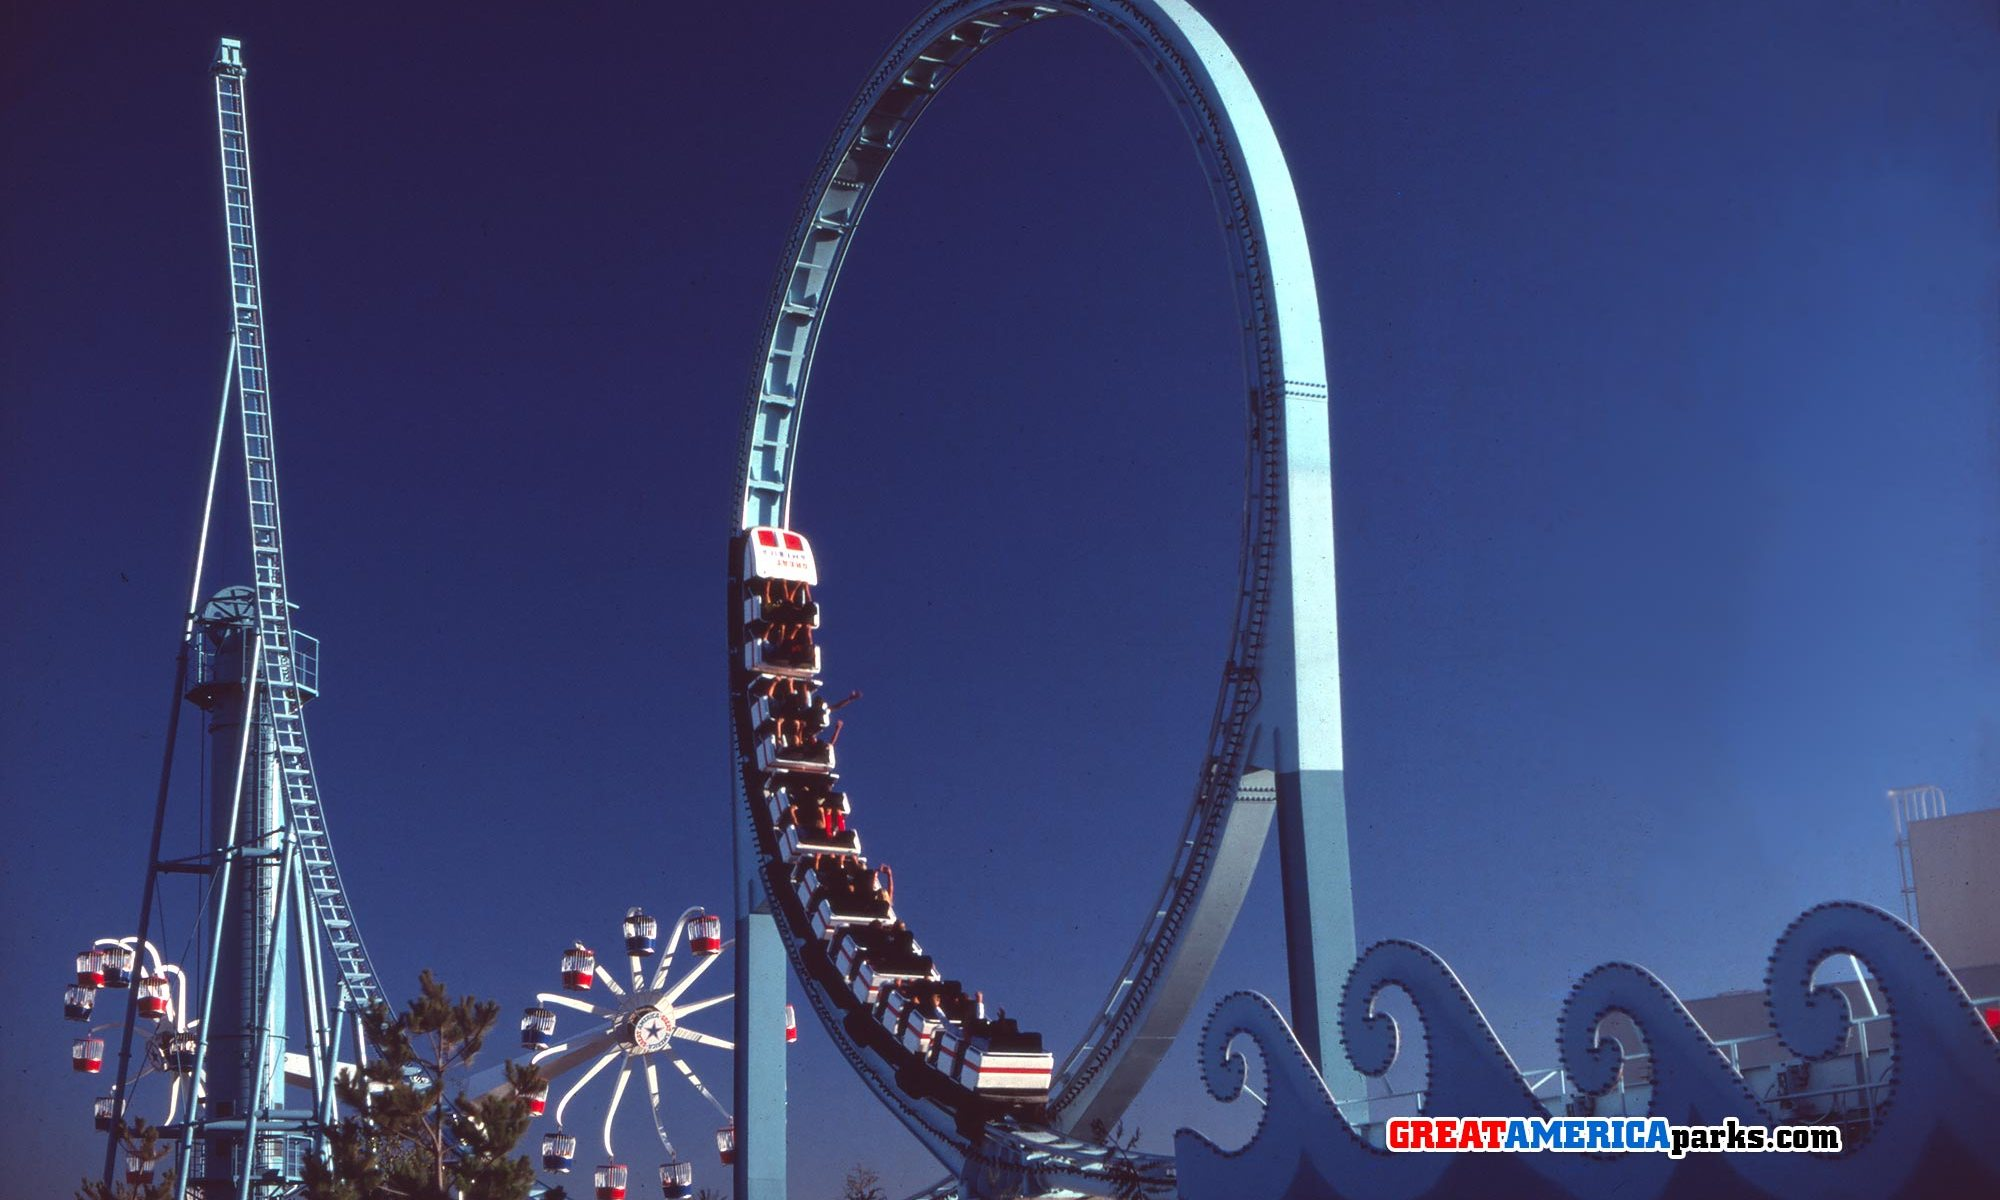 Marriott's Great America rides